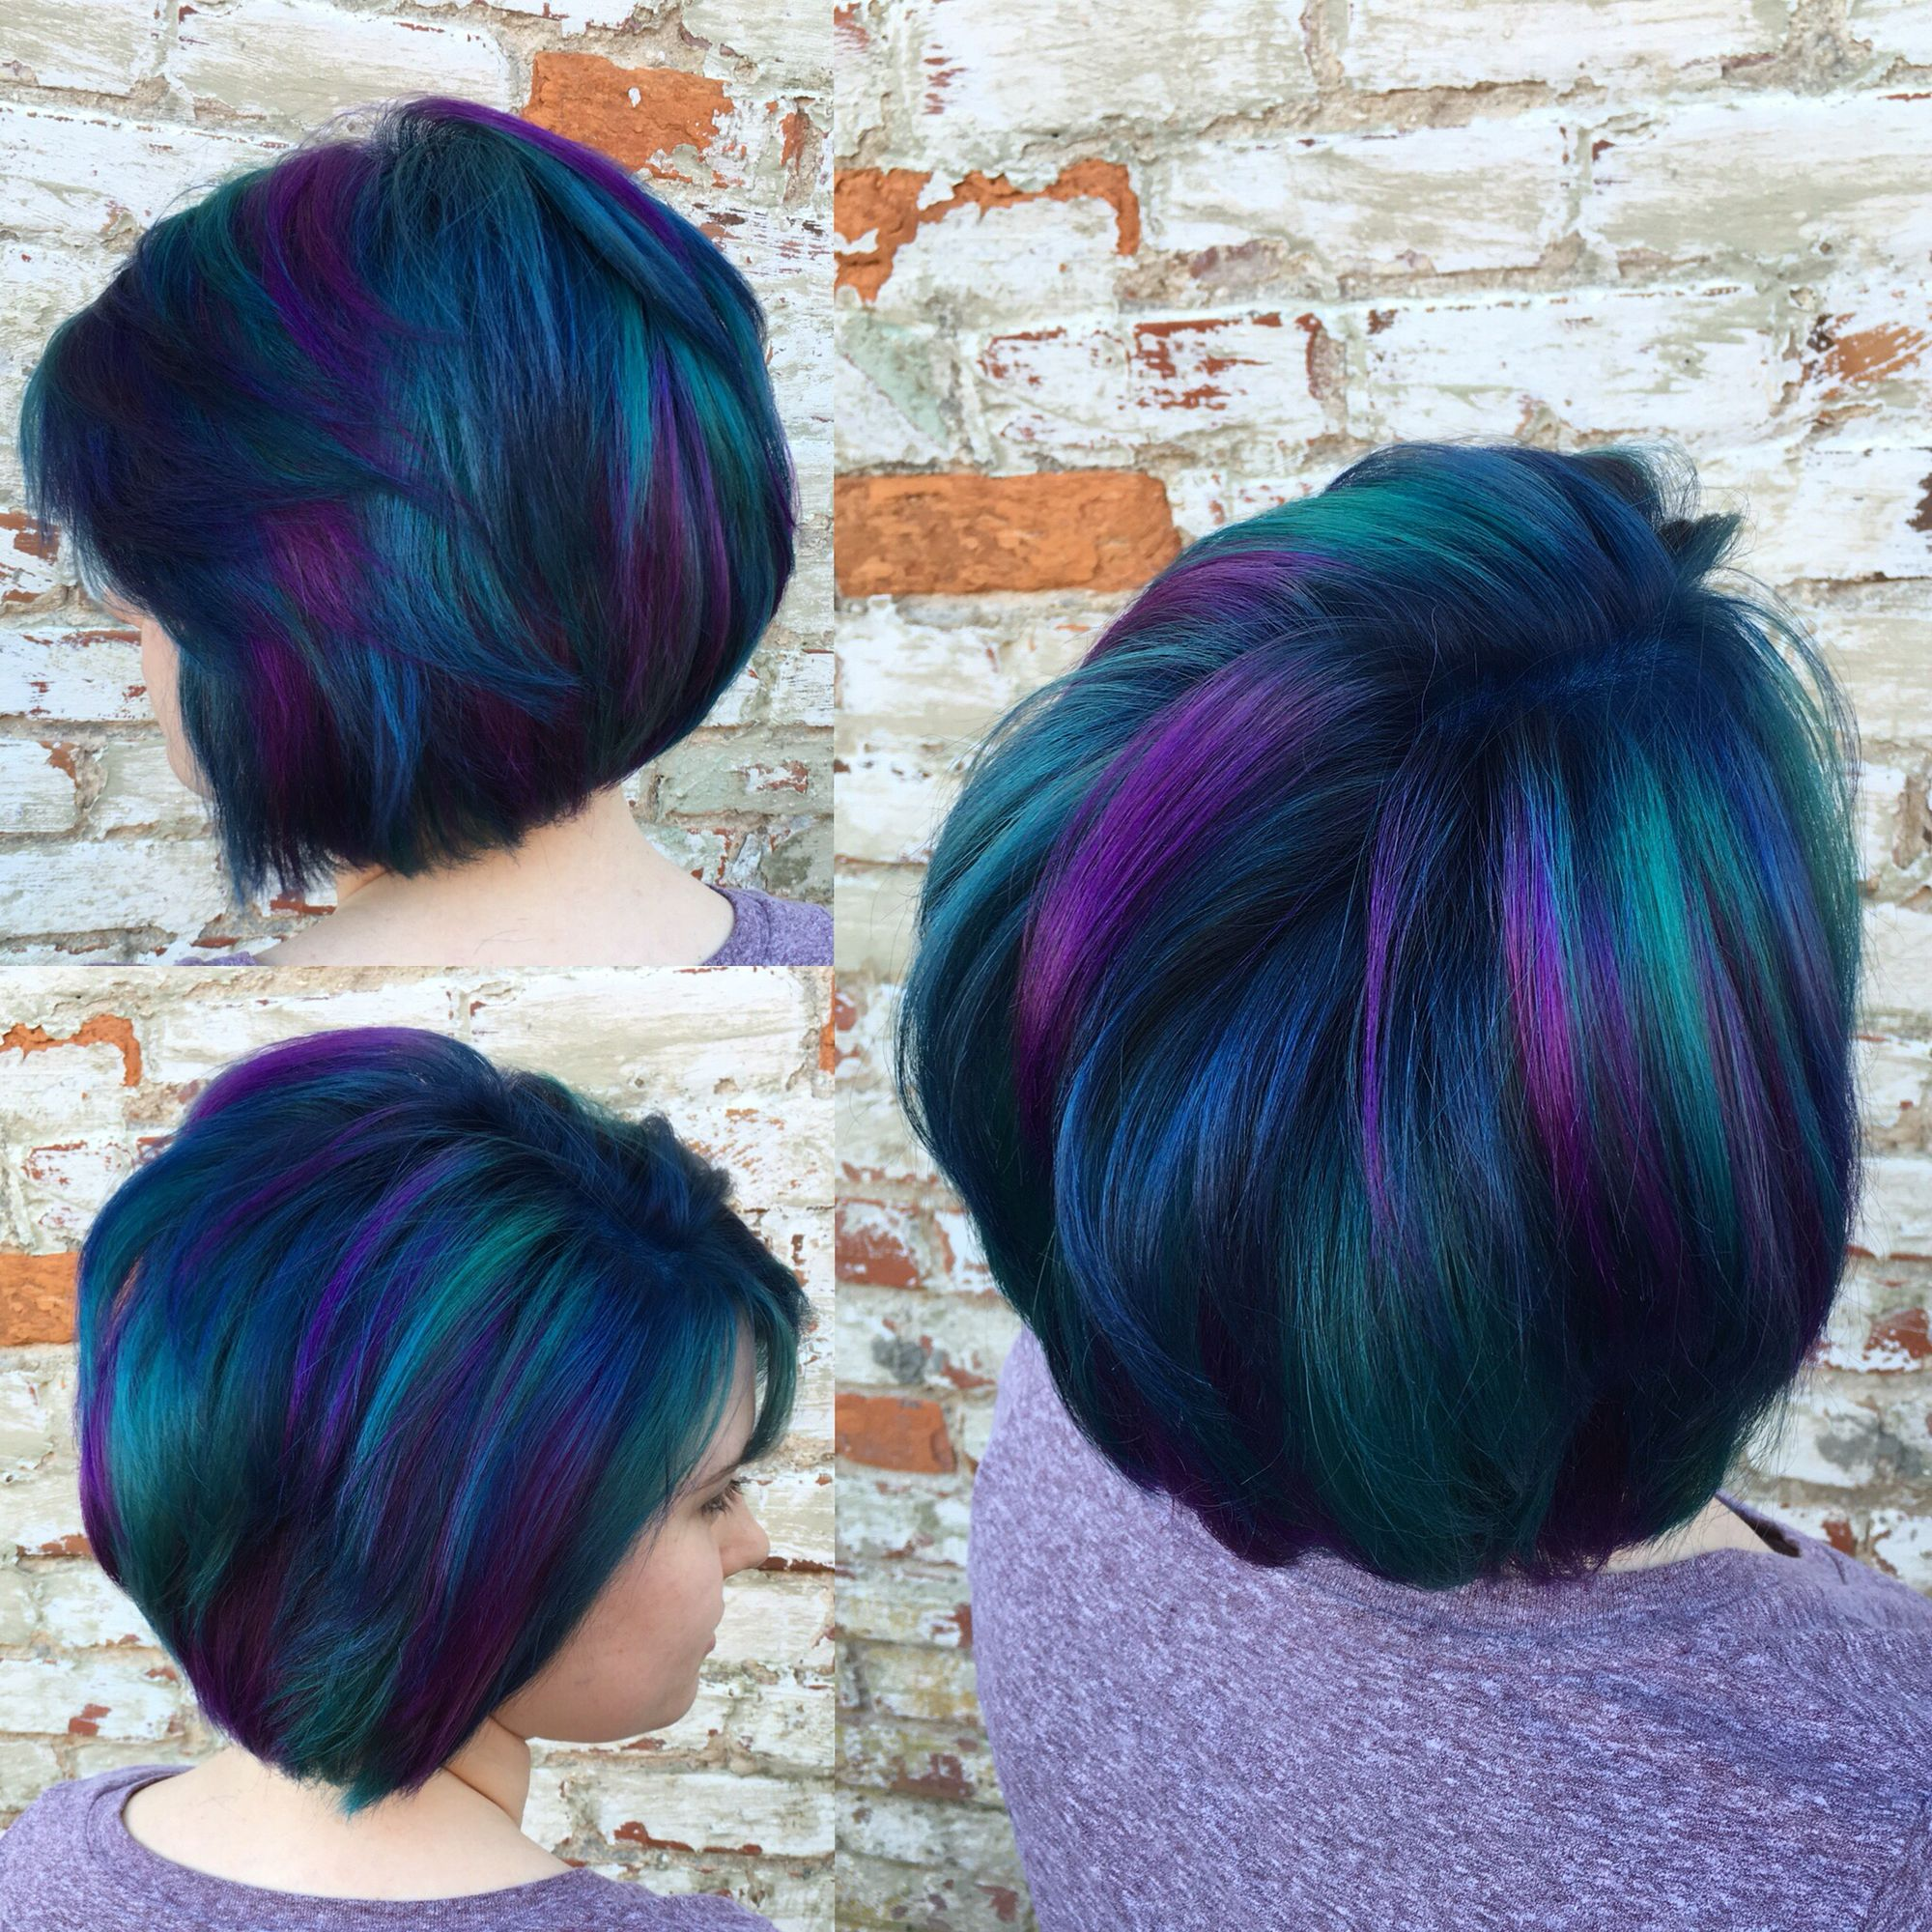 Pixie Hair Rainbow 7 Unexpected Ways To Wear Your Short Haircut